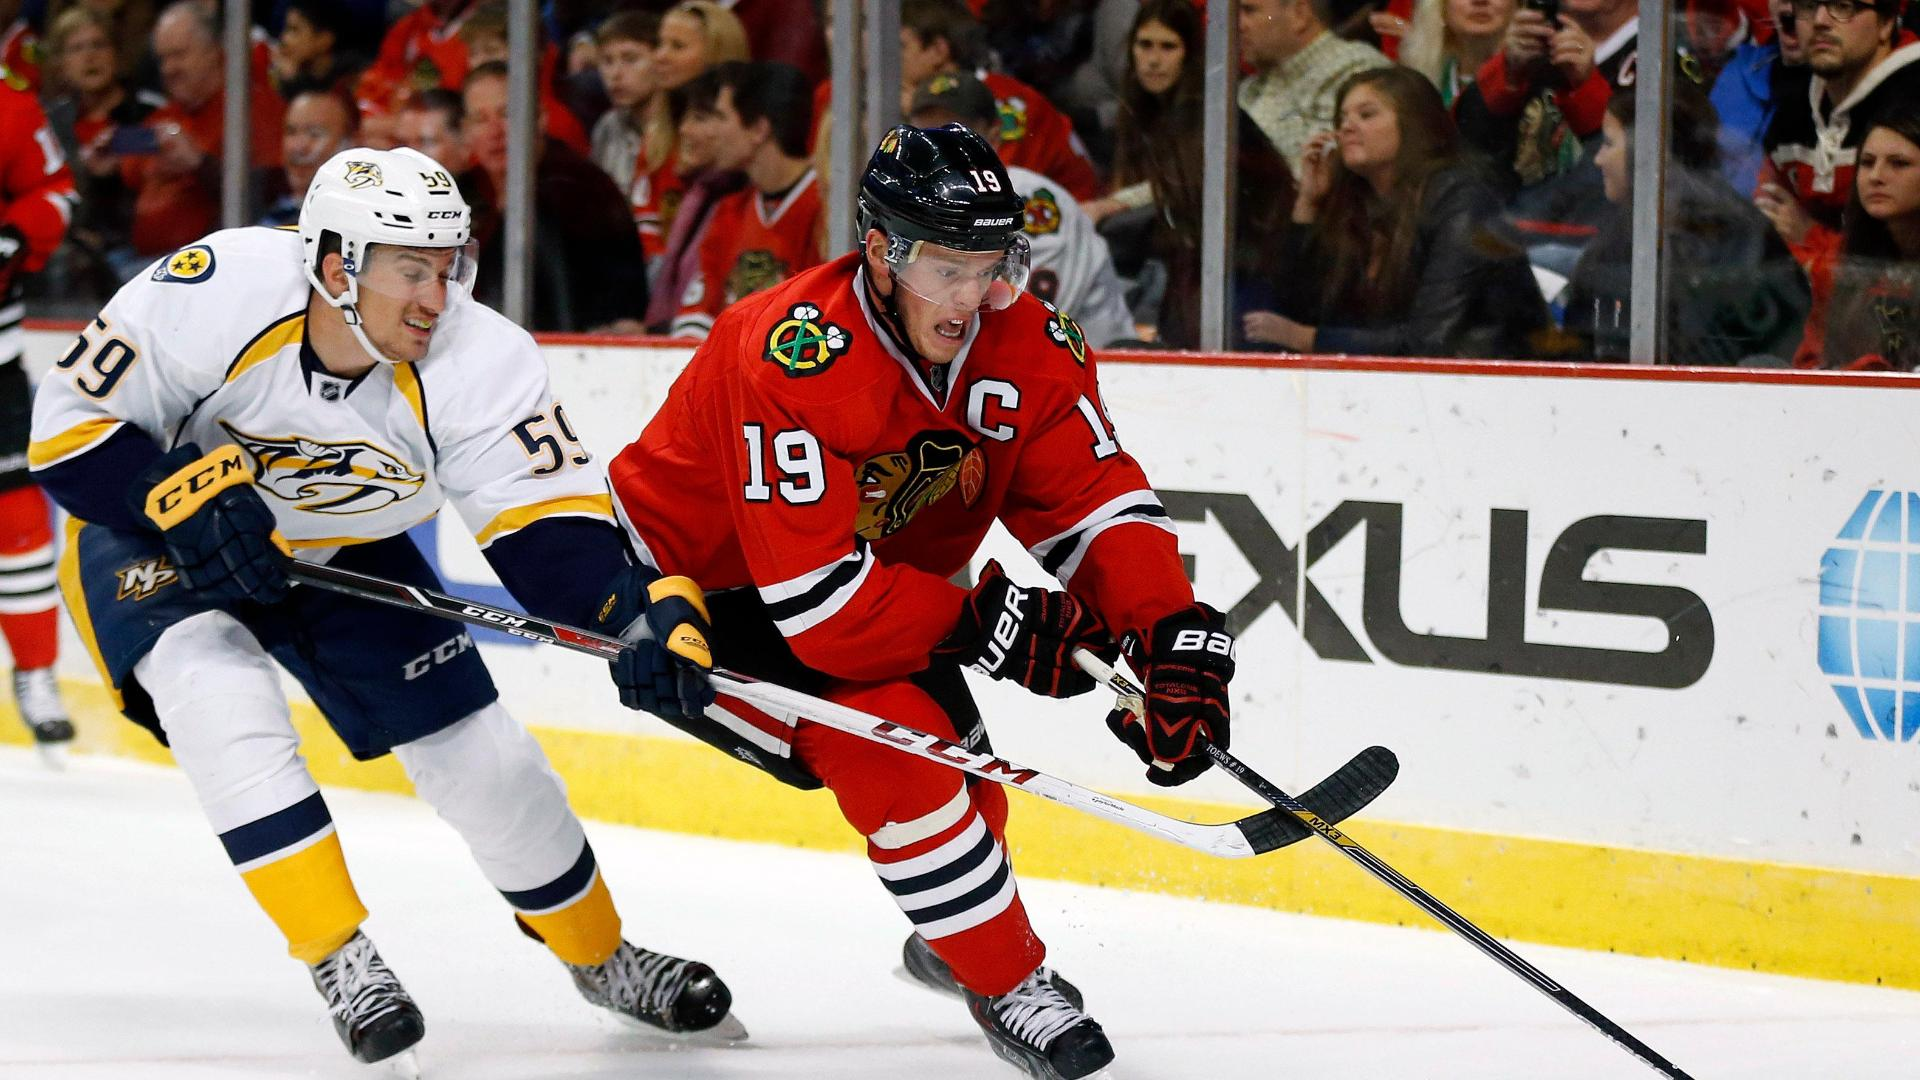 Video - Blackhawks Sneak Past Predators I